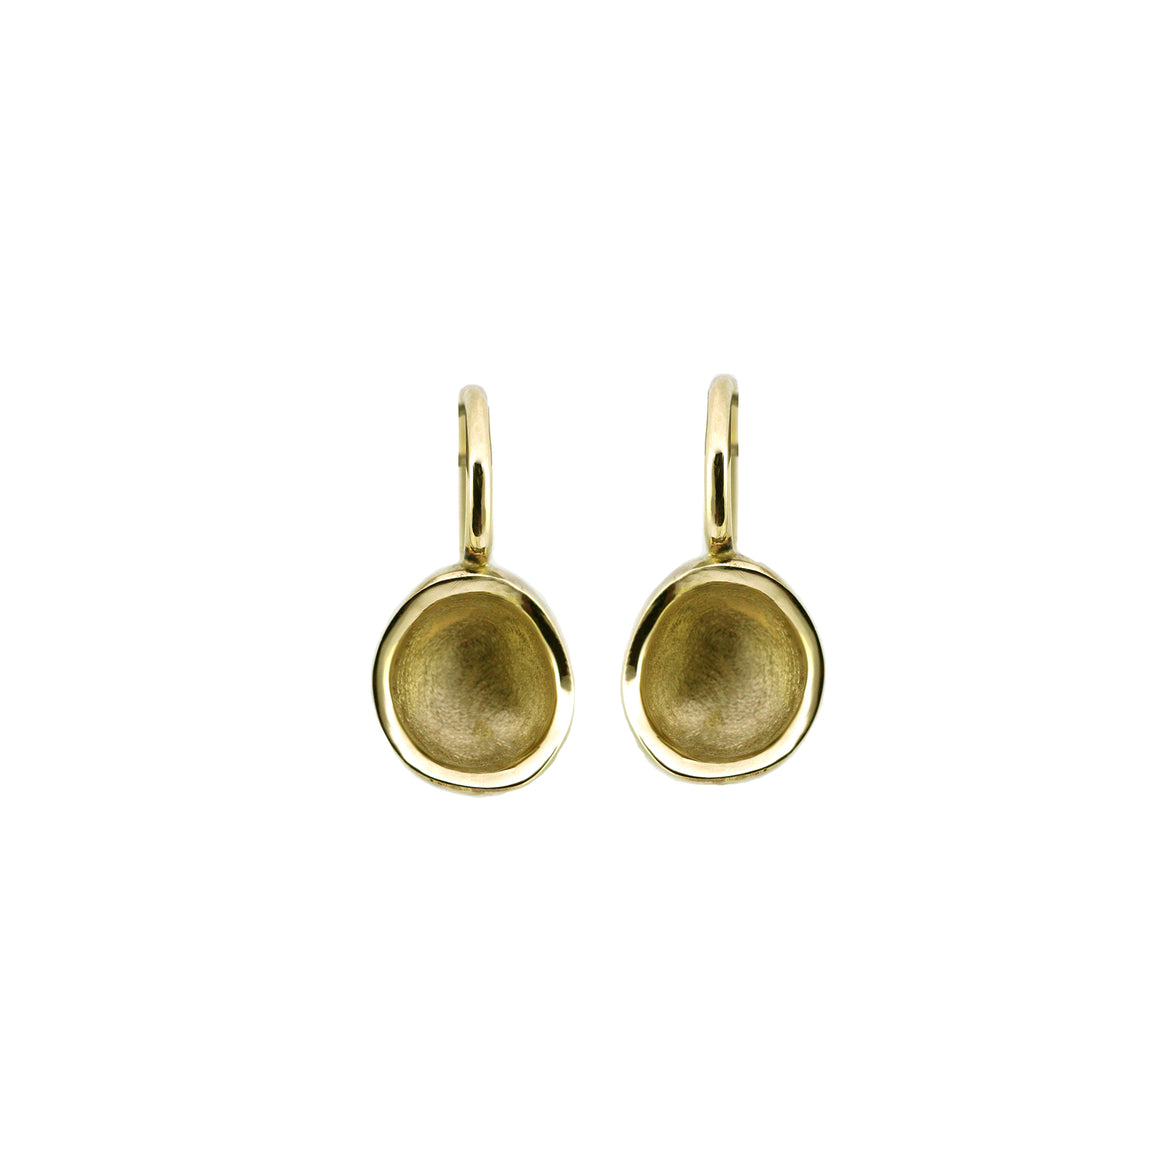 Golden Bowl earring